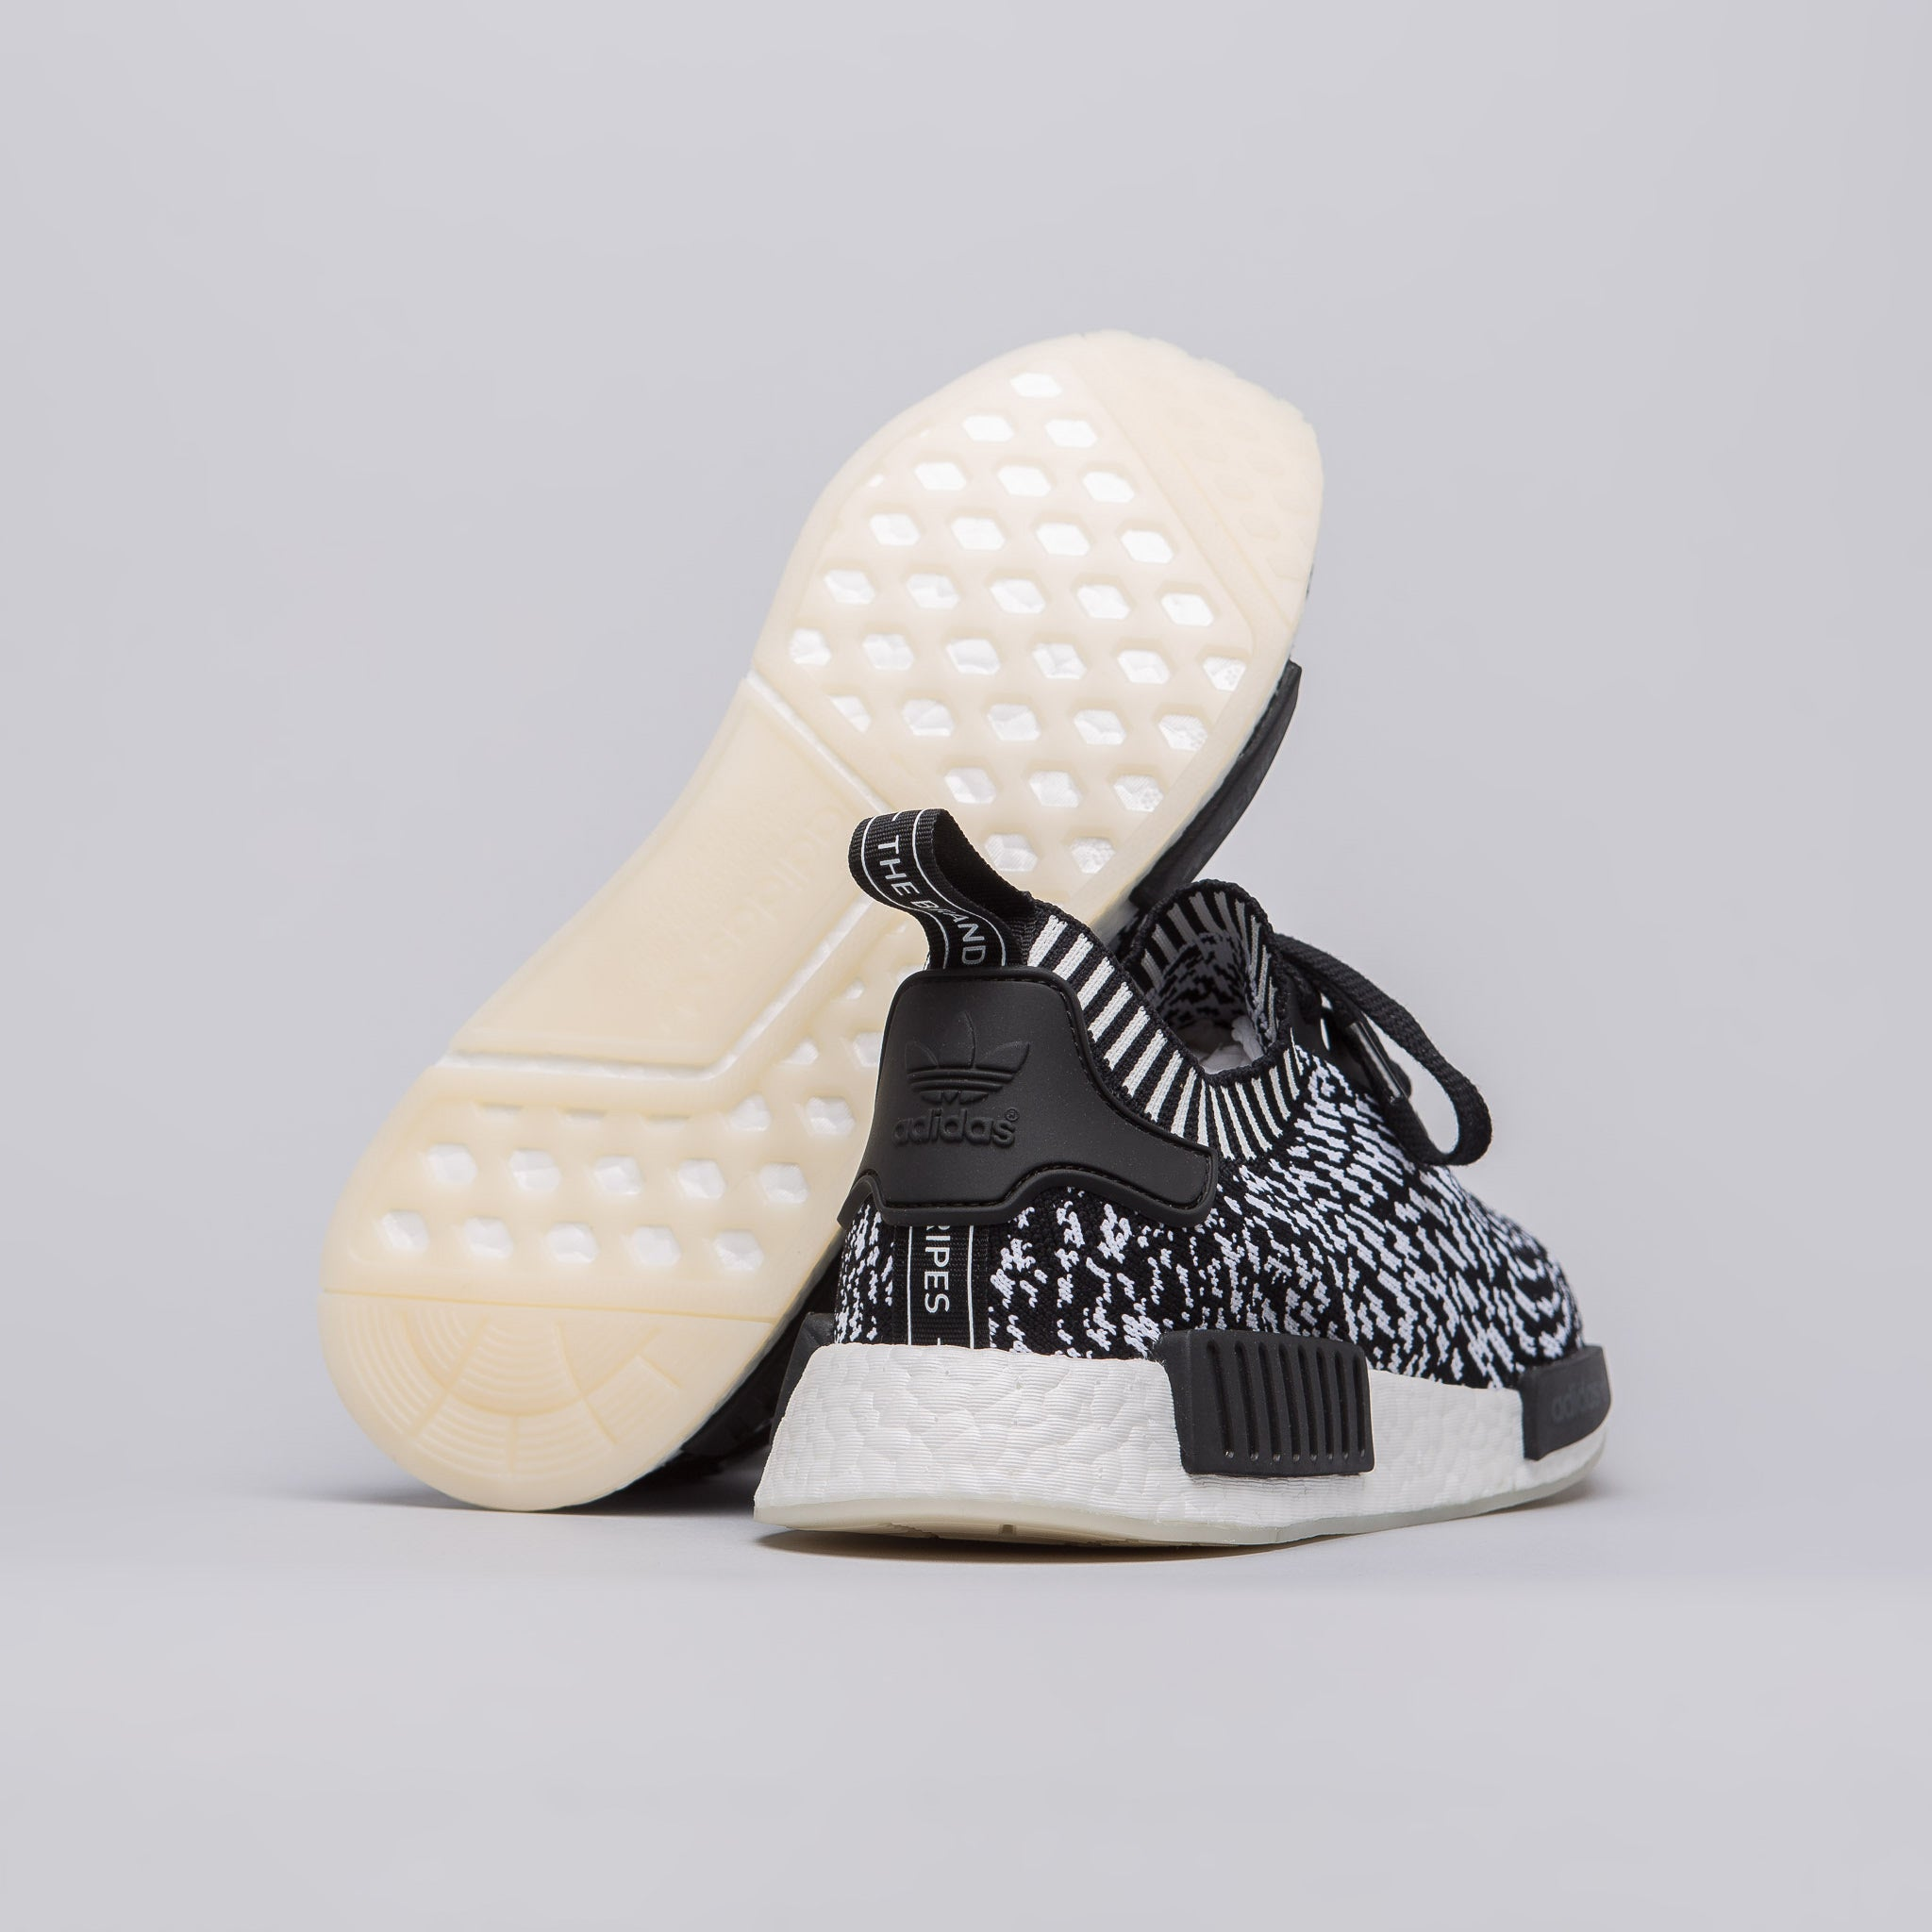 Here's Where to Buy the adidas NMD_R1